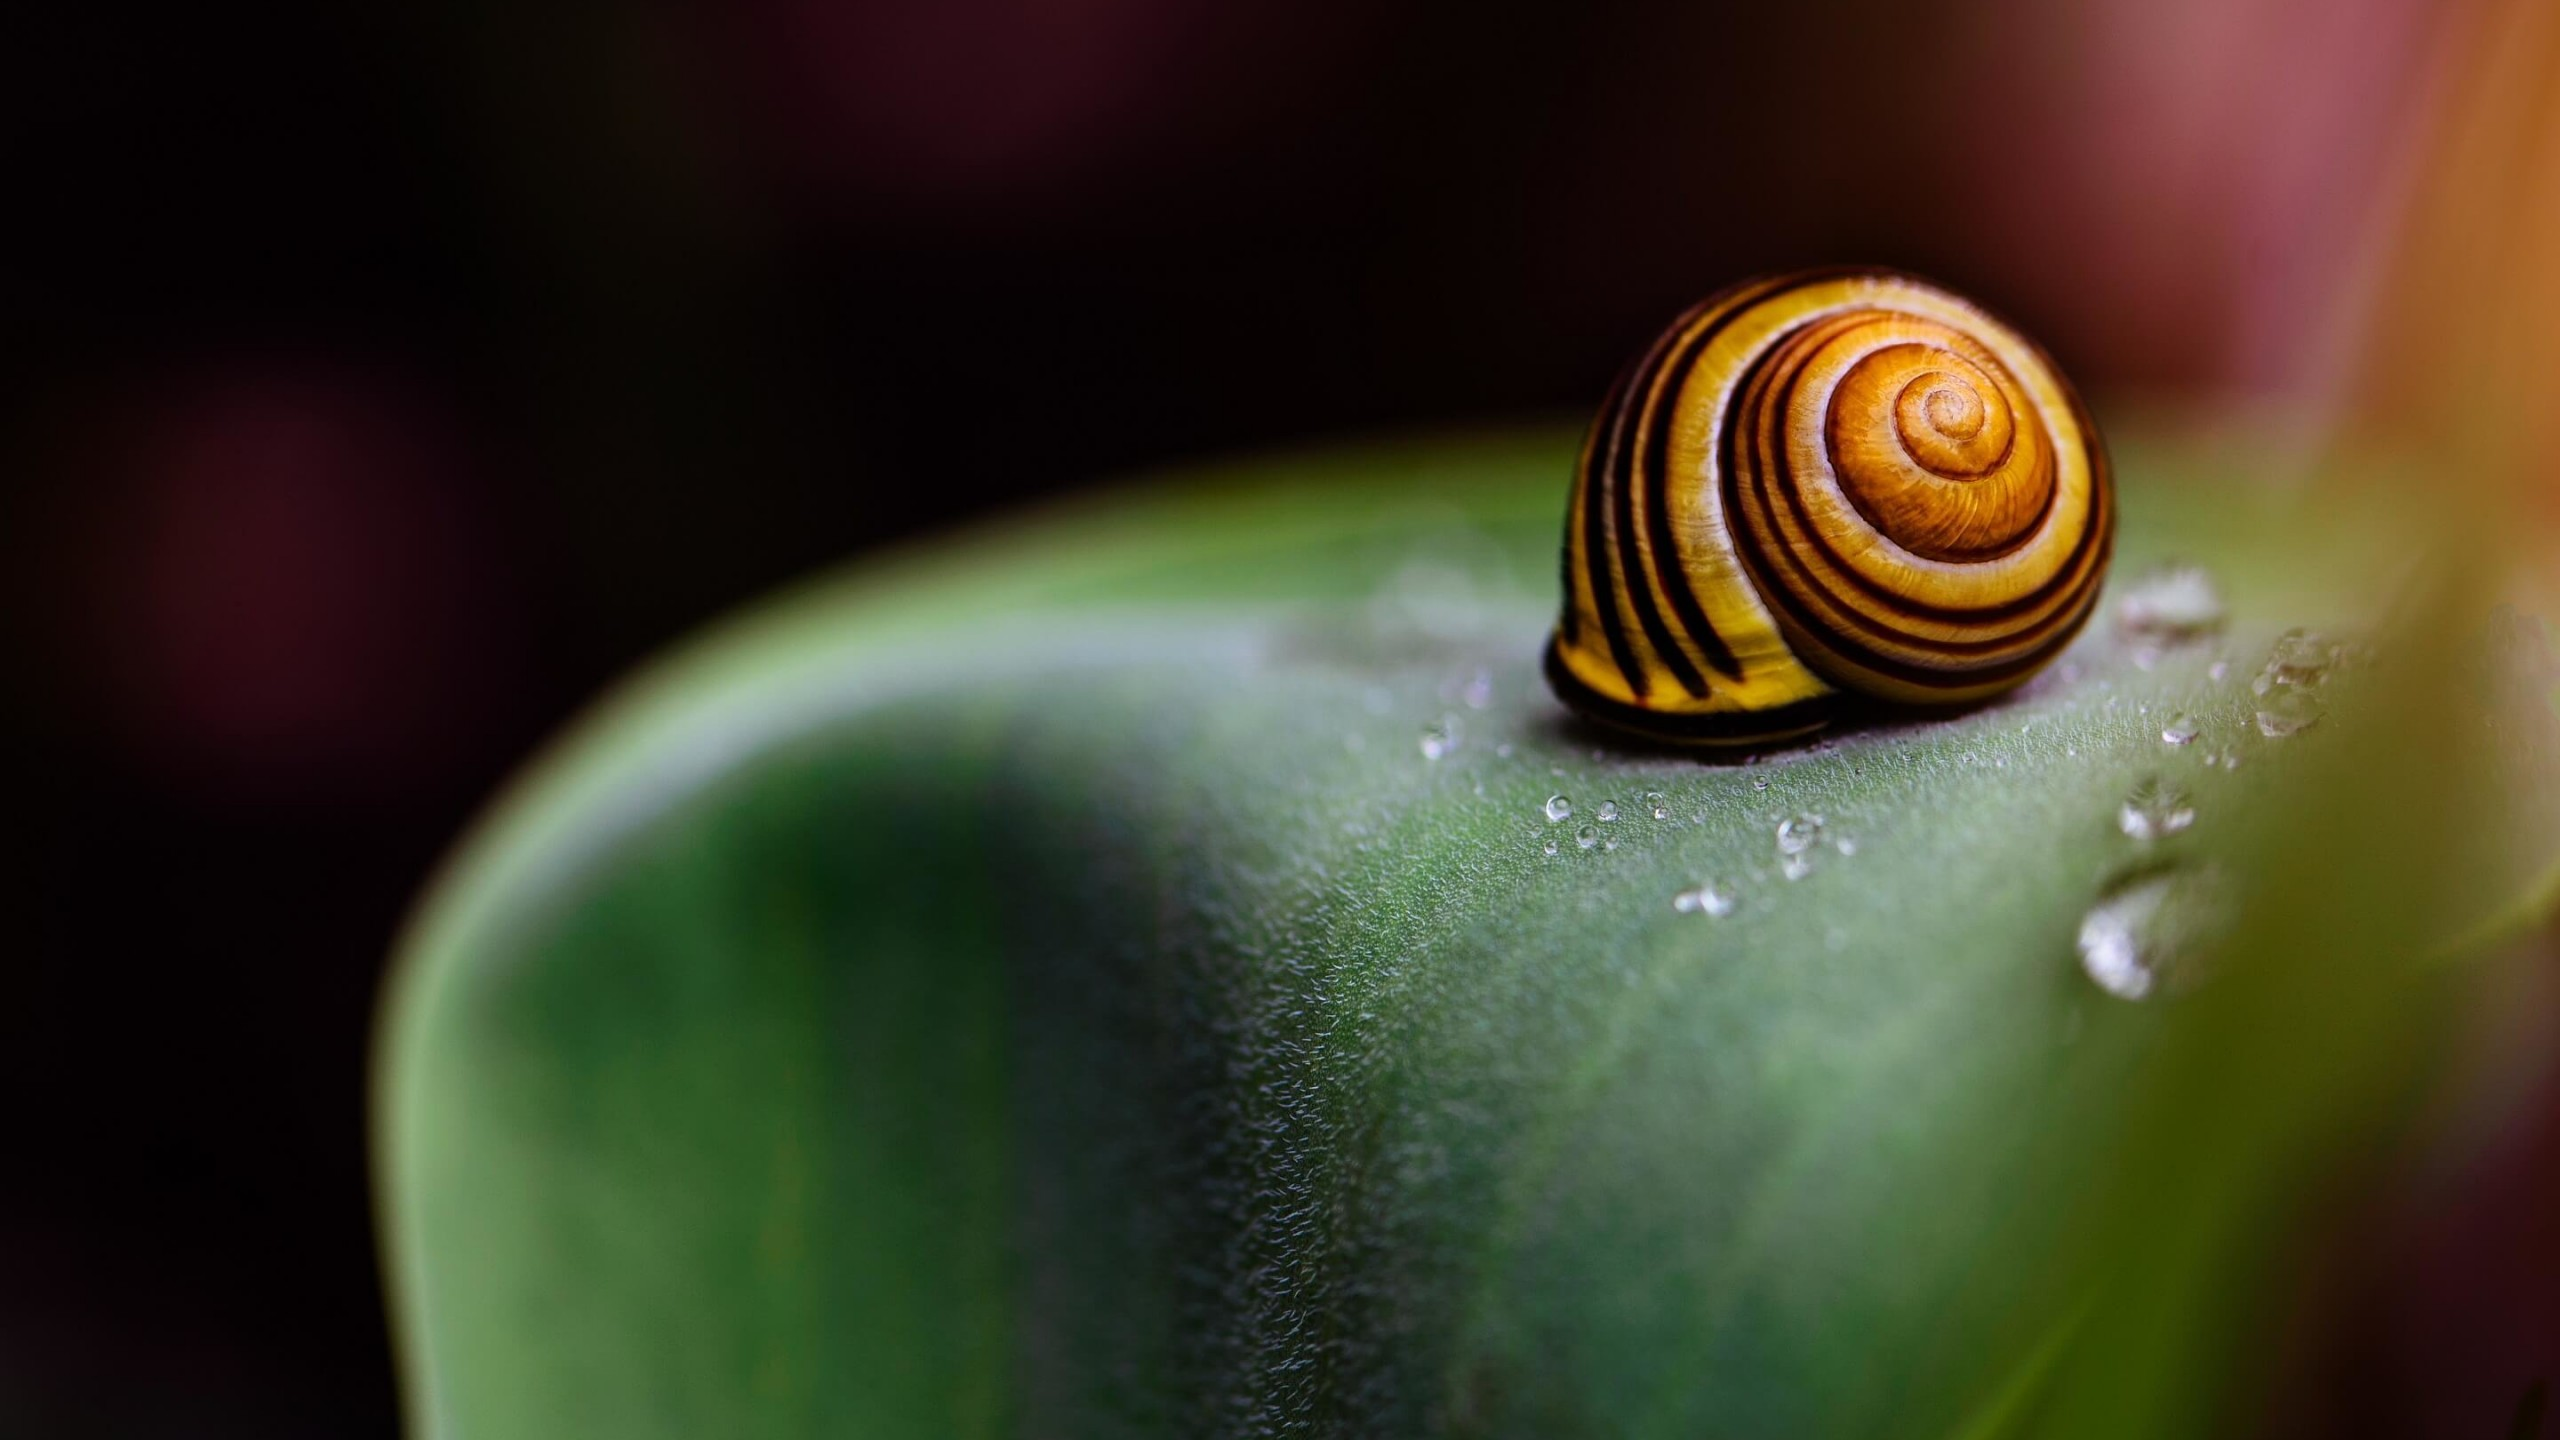 Snail Shell Wallpaper for Social Media YouTube Channel Art